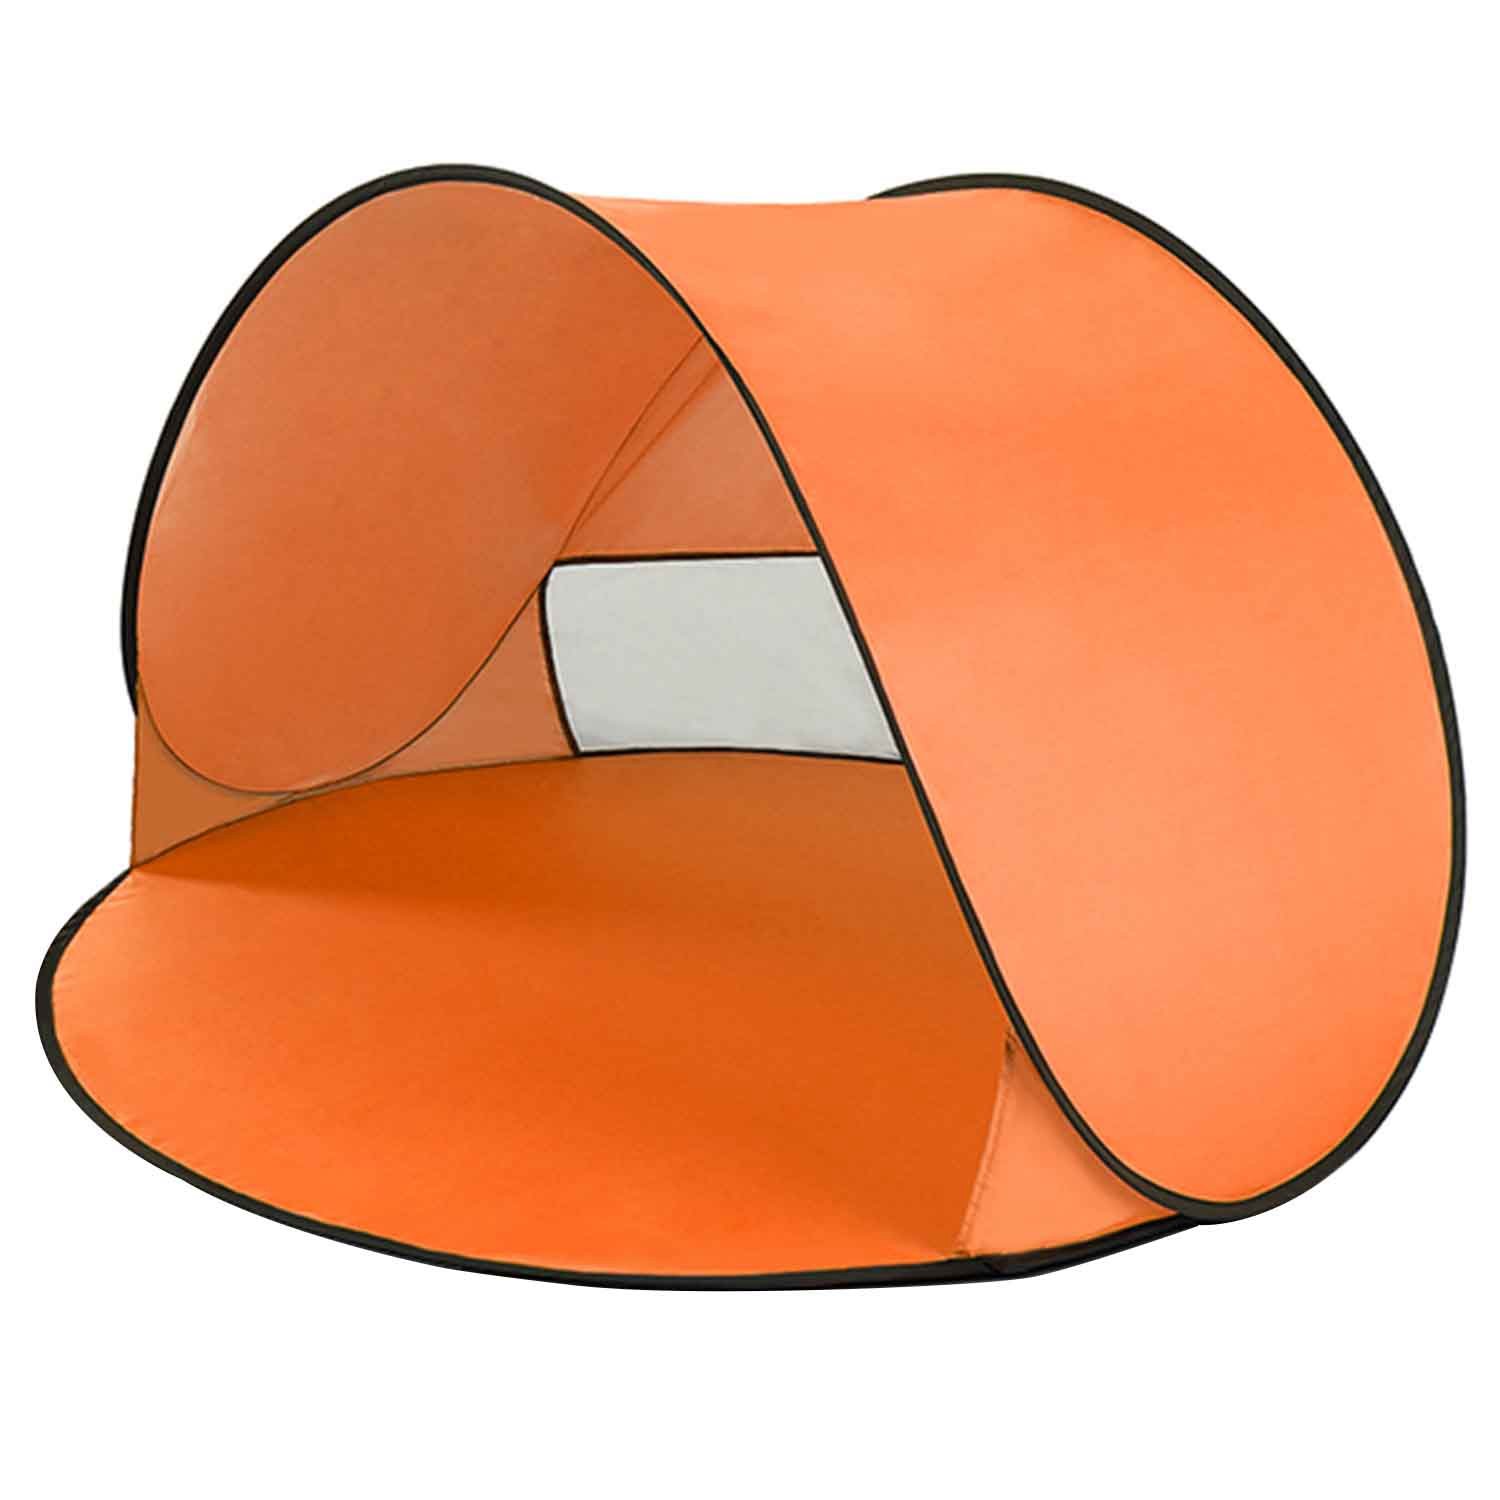 Orange Outdoor Camping Tents Instant Up Tent Baby Beach Tent Cabana Portable Anti Uv Sun Shelter For Camping Fishing Hiking